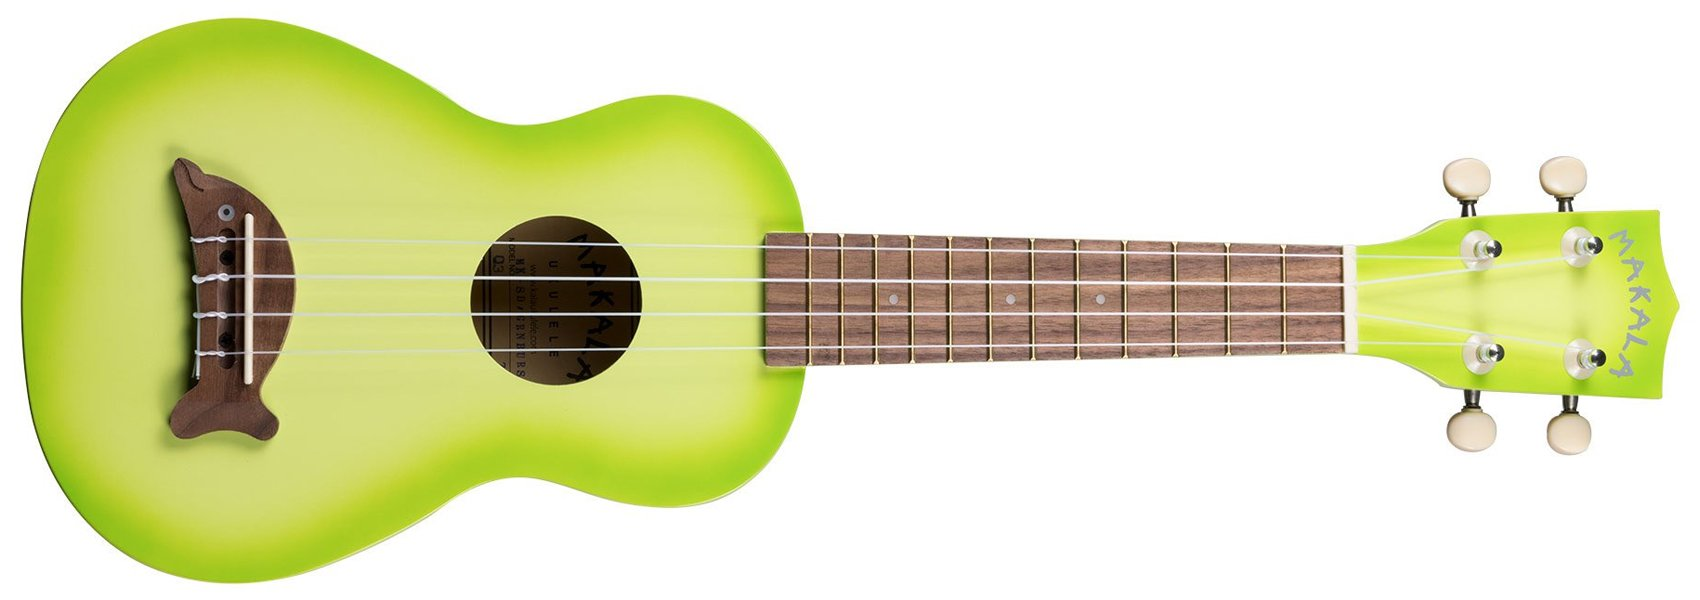 Makala Dolphin Bridge Soprano Ukulele, Green Apple Burst